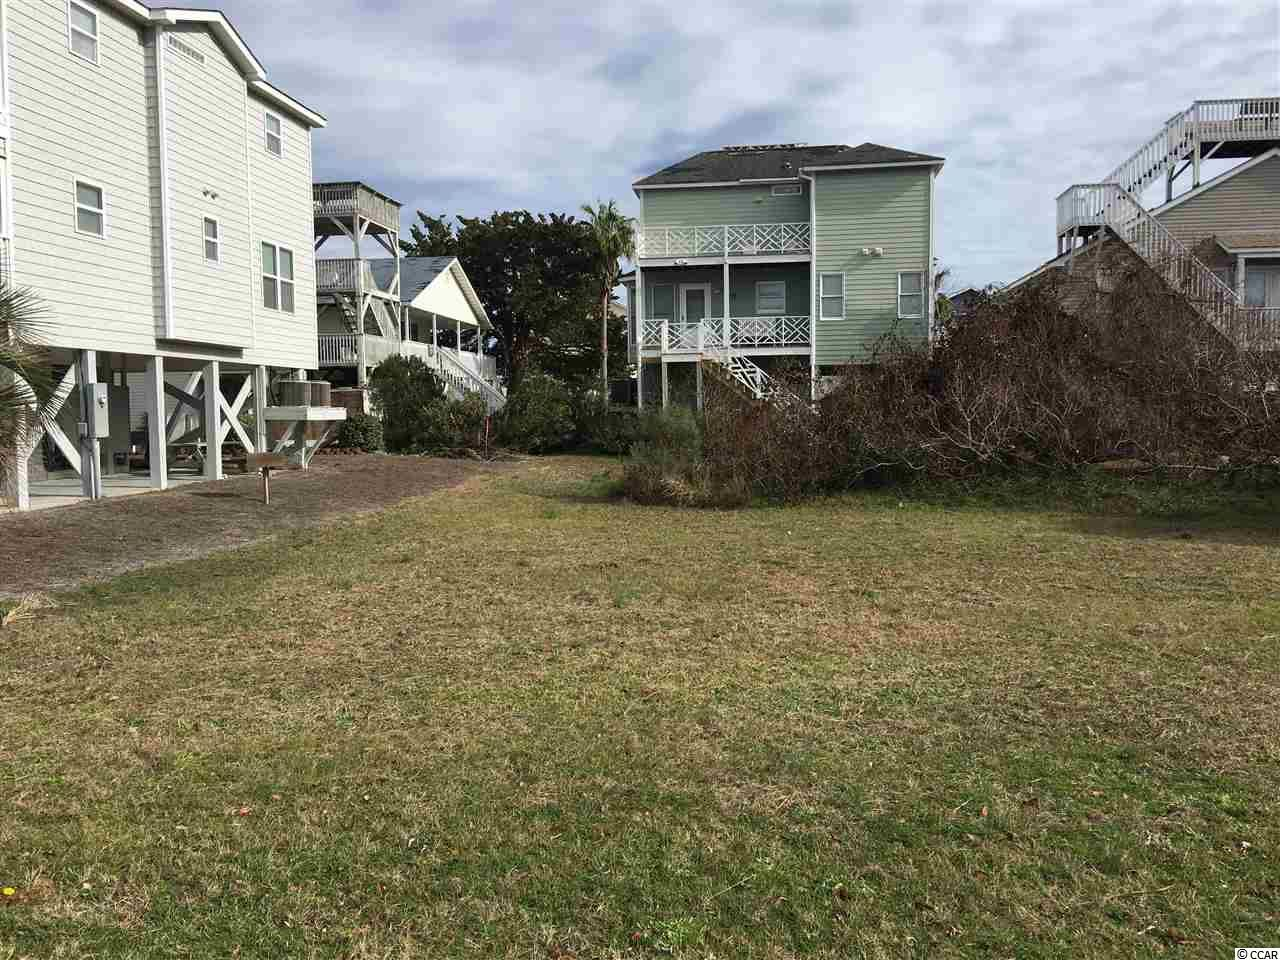 417 2nd St., Sunset Beach, NC, 28468, Twin Lakes|Sunset Beach, NC Home For Sale